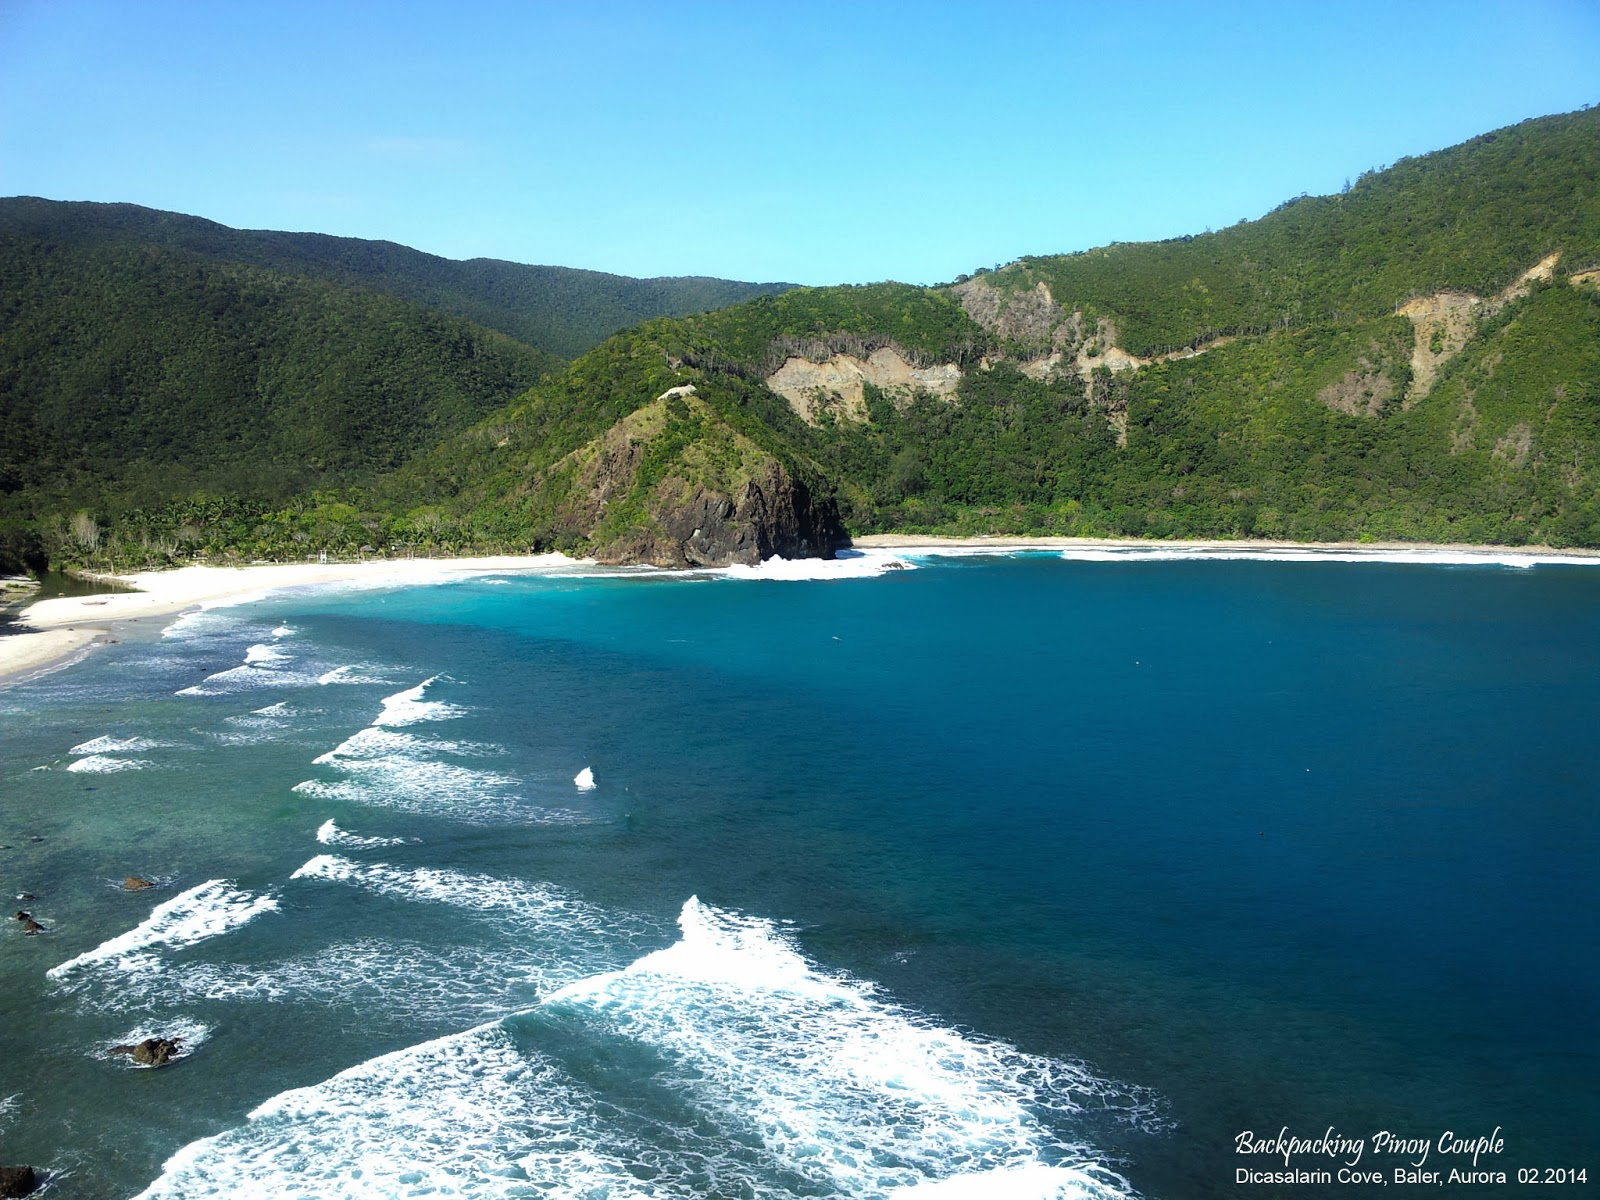 Baler, Backpacking Pinoy Couple, Philippines, It's More Fun in the Philippines, philippine travels, backpacking, backpacking philippines, how to go to aurora, how to go to baler, North Luzon, how to go to Dicasalarin Cove, Dicasalarin Cove